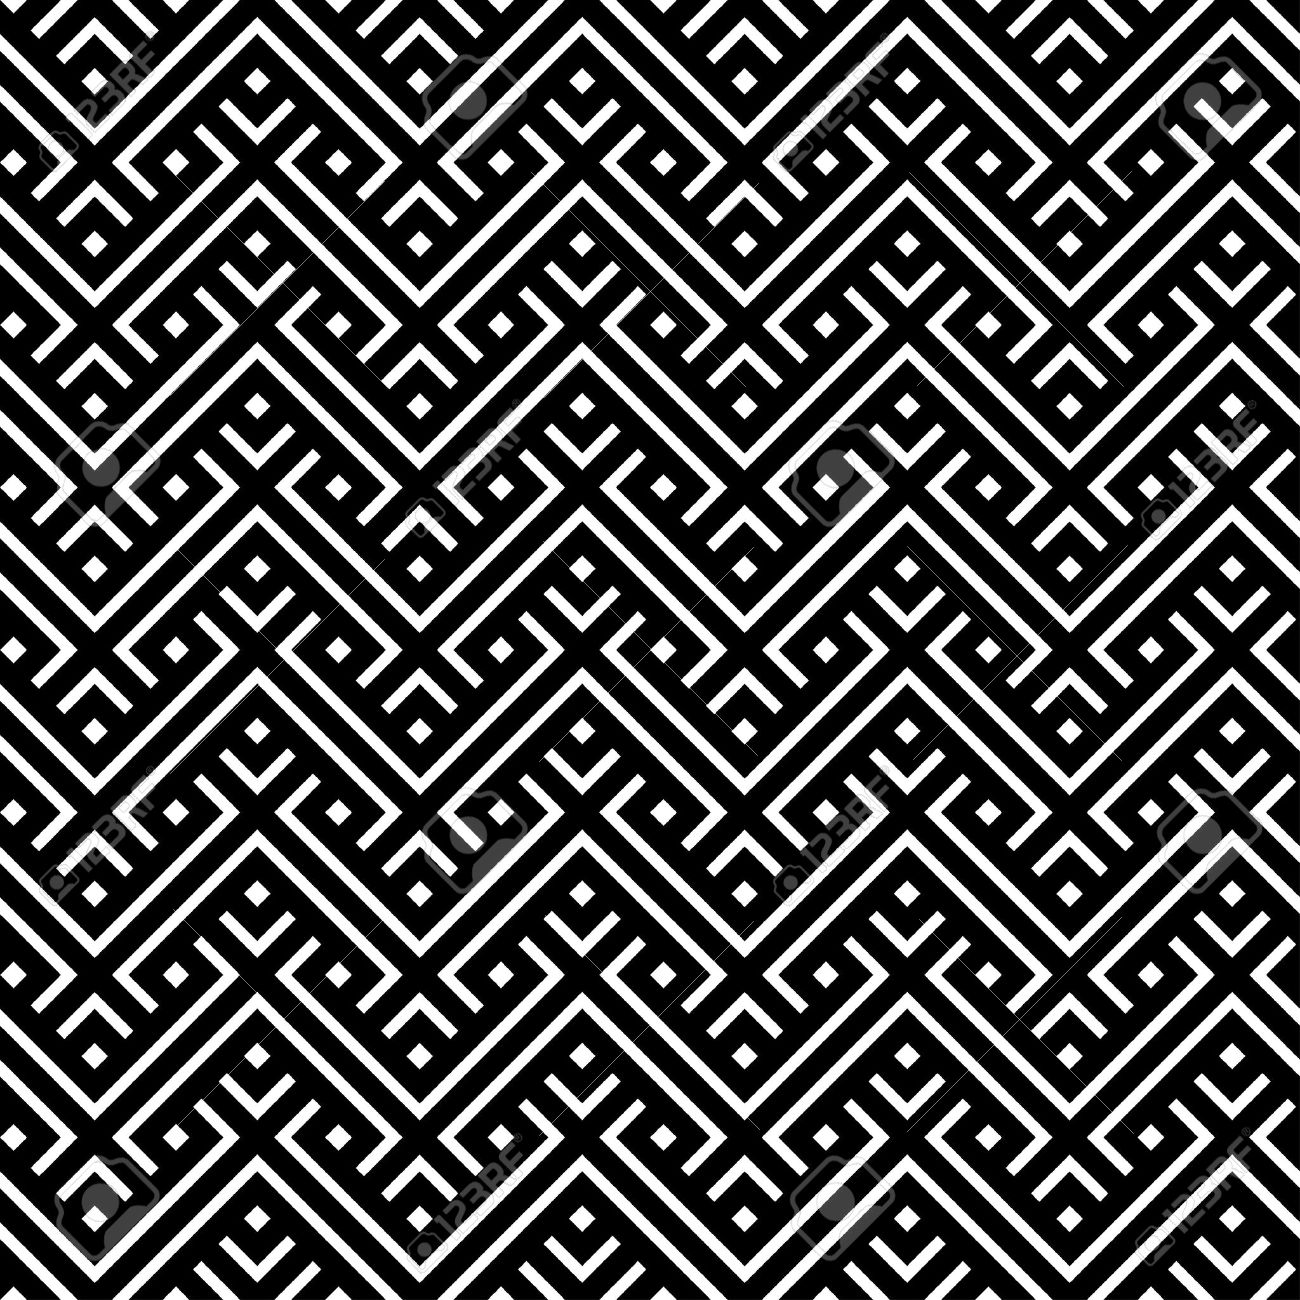 Moroccan geometric pattern royalty free stock photos image 13547078 - Seamless Pattern For A Fabric Moroccan Pattern Black And White